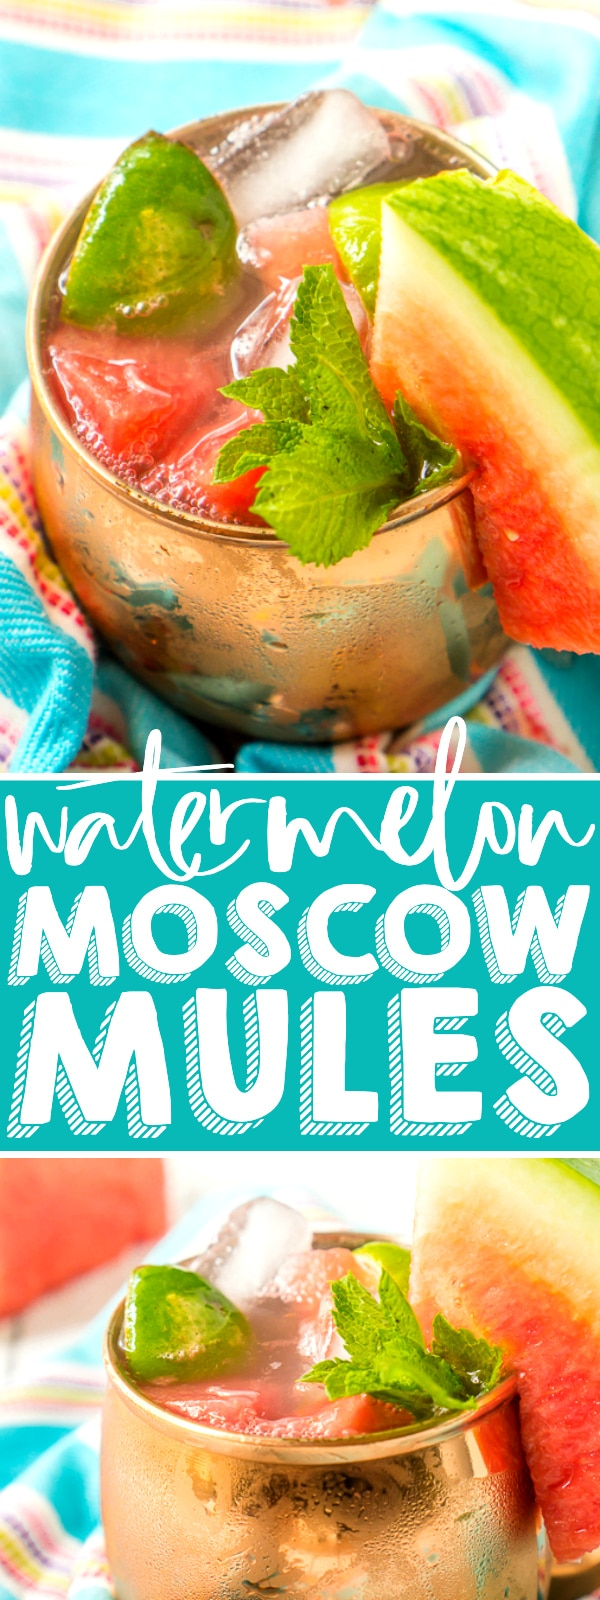 Summers are meant for watermelon cocktails! This fresh Mint Watermelon Moscow Mule recipe will be your new go-to summer drink with the perfect combination of sweet fruit, fresh lime juice, spicy ginger beer and a touch of mint!  | THE LOVE NERDS #cocktailrecipe #summercocktail #mintcocktail